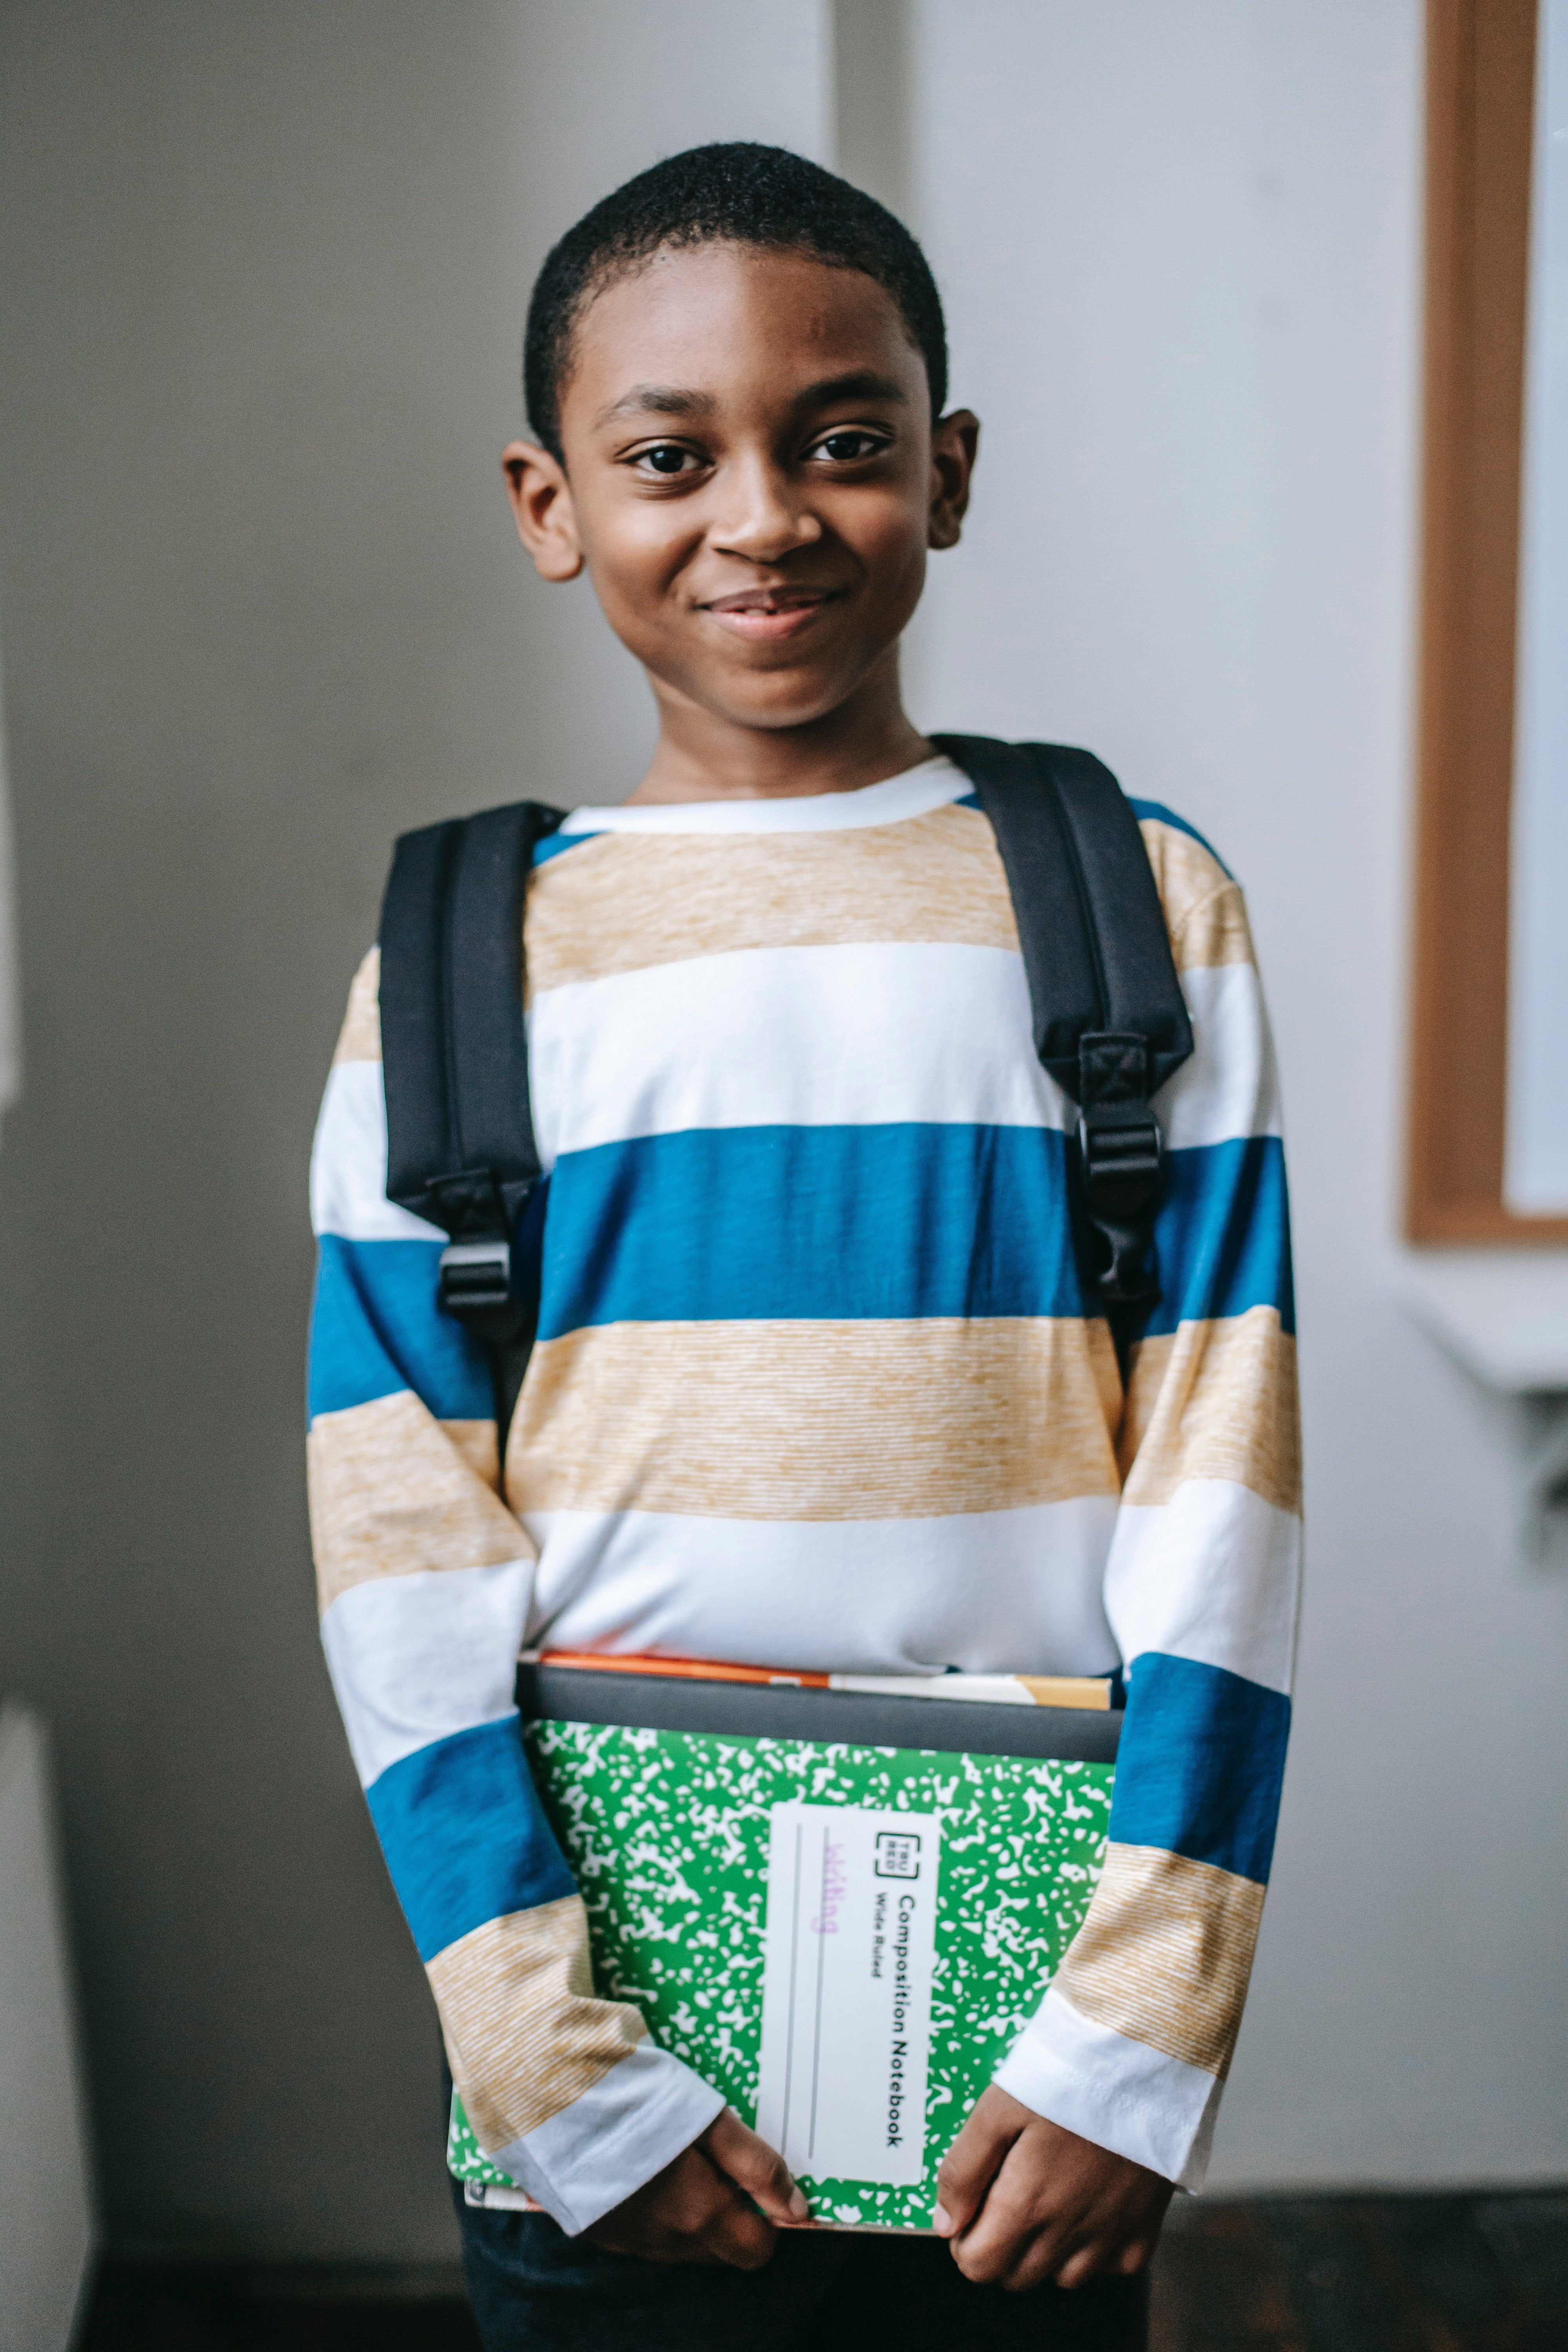 Little Johnny stayed calm and tackled his teacher's questions confidently.   Photo: Pexels